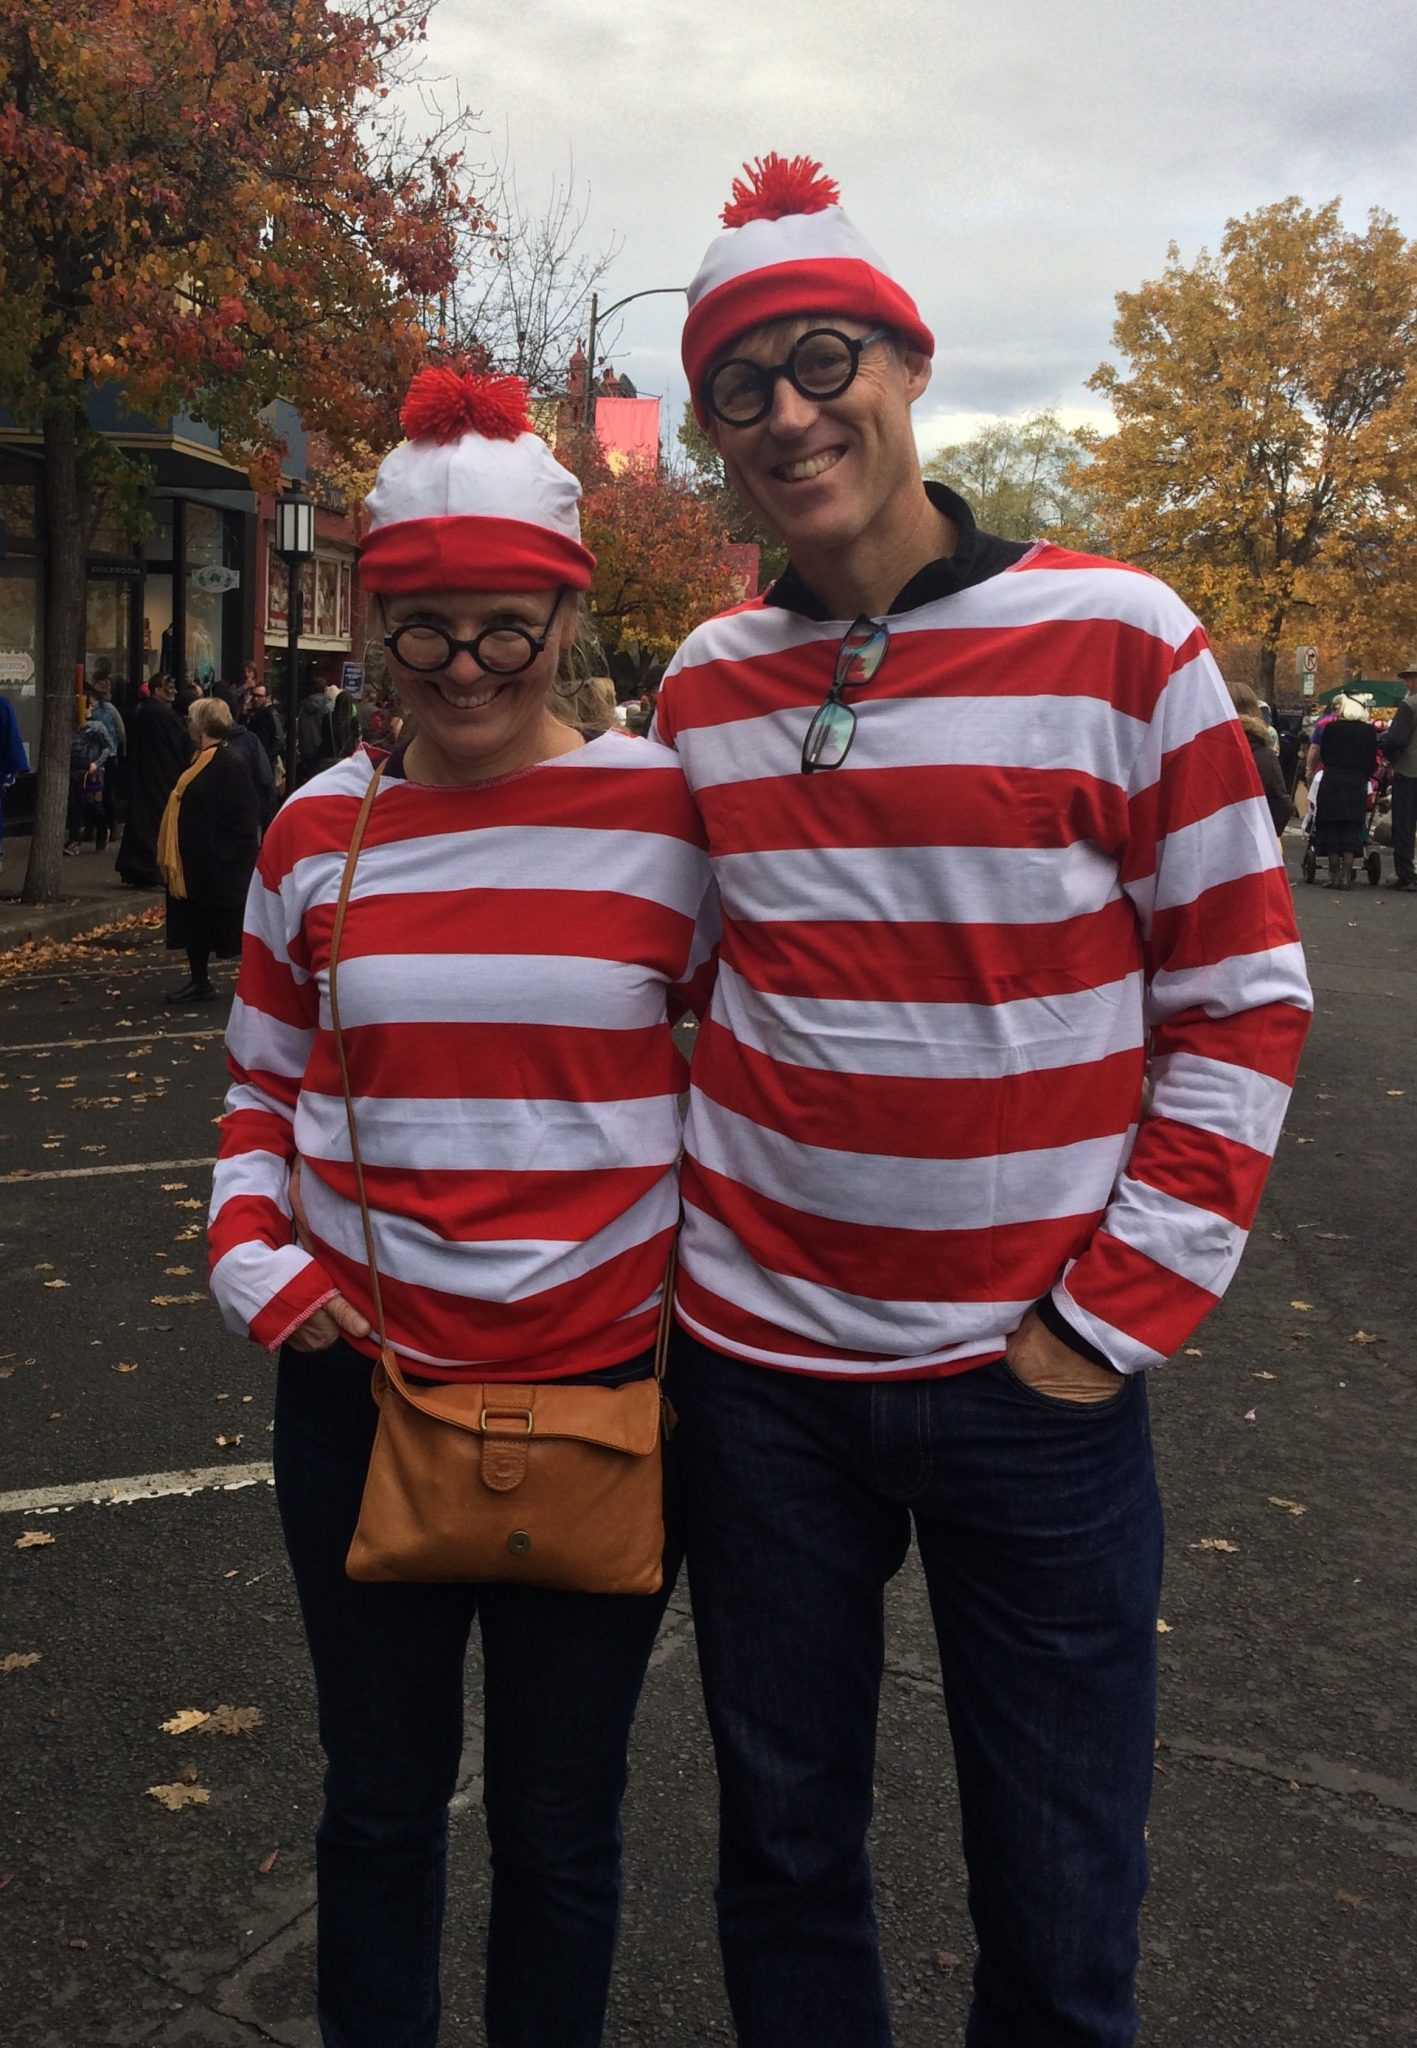 Two Waldos at the Halloween parade in Ashland, Oregon